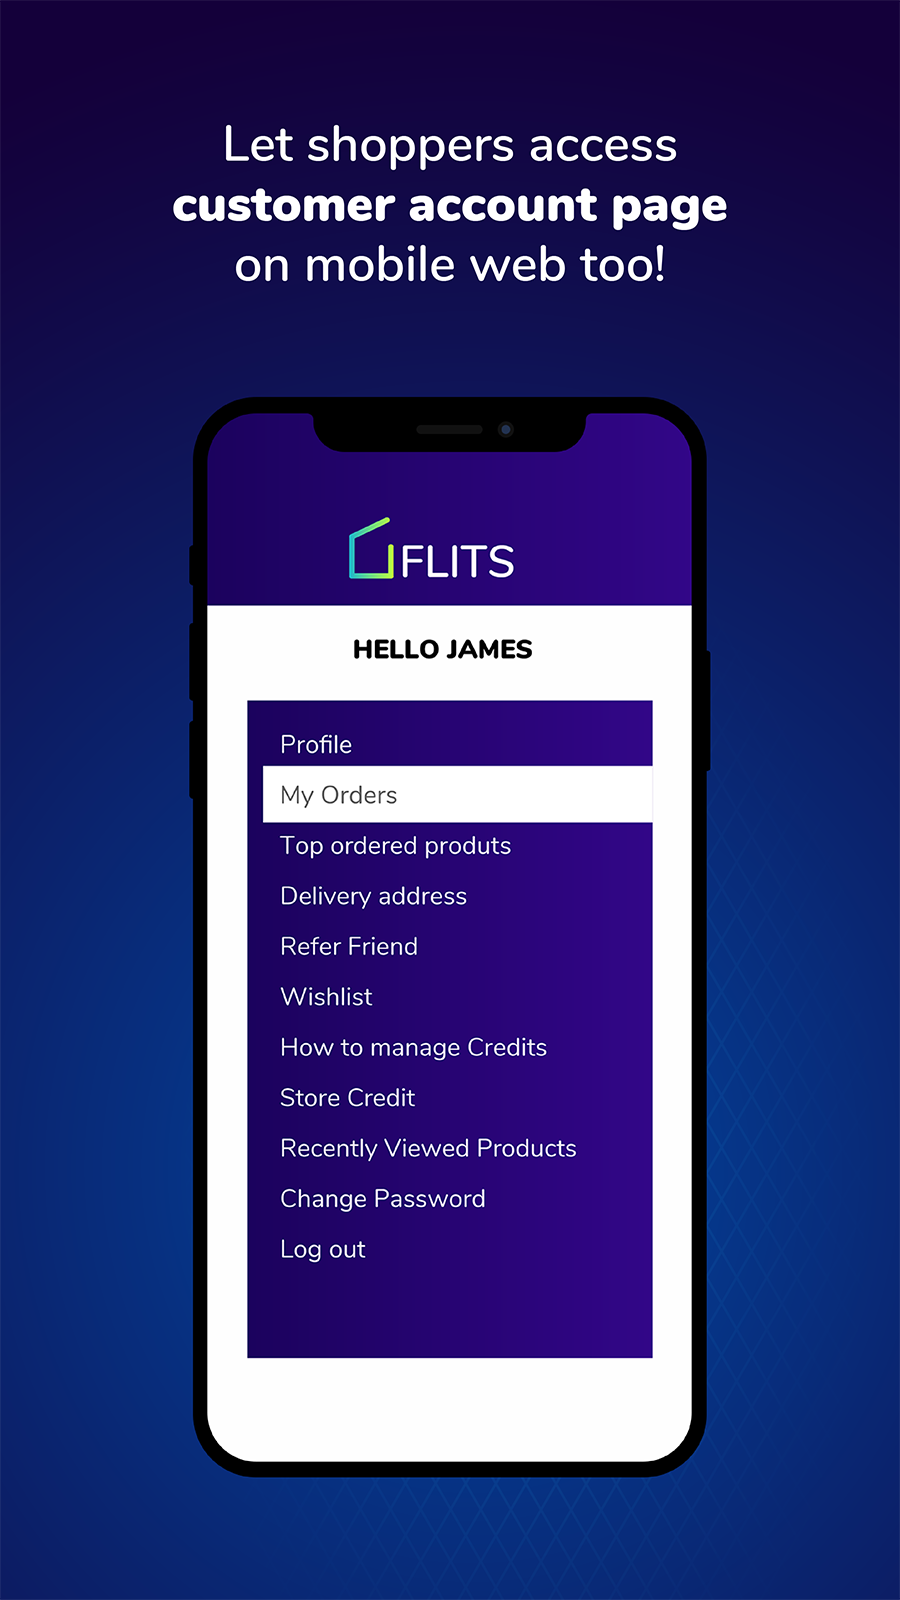 Let Shoppers access customer account page on mobile web too.